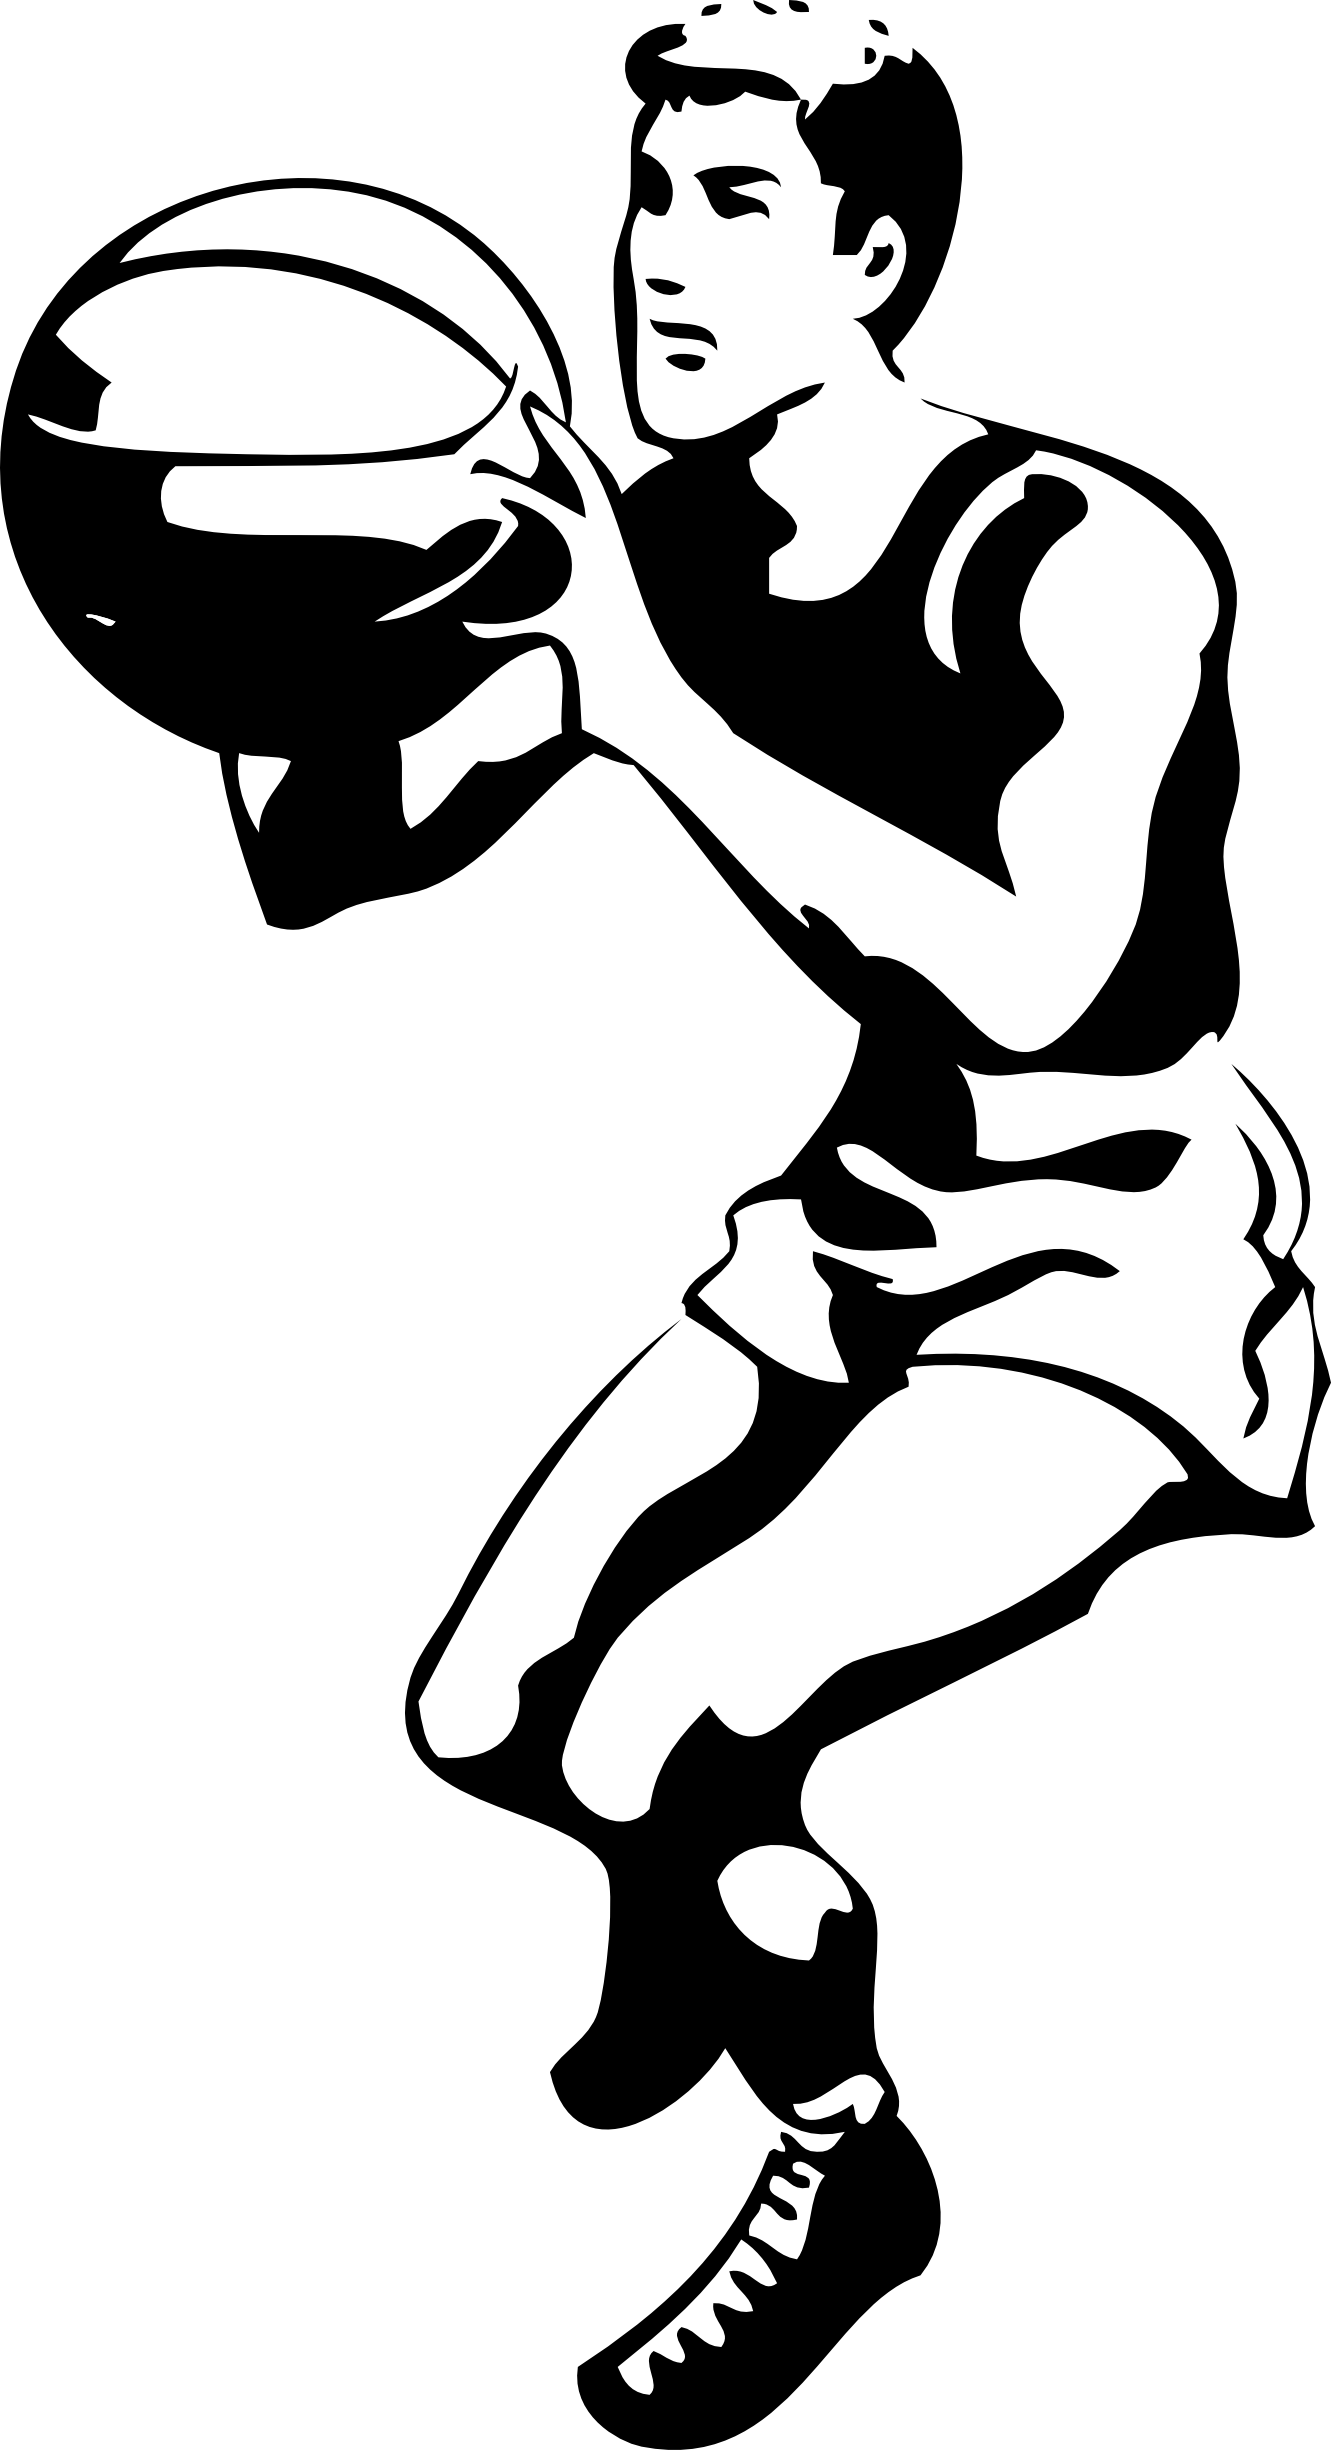 Basketball free throw clipart image black and white stock Basketball Player Clipart Black And White | Clipart Panda - Free ... image black and white stock